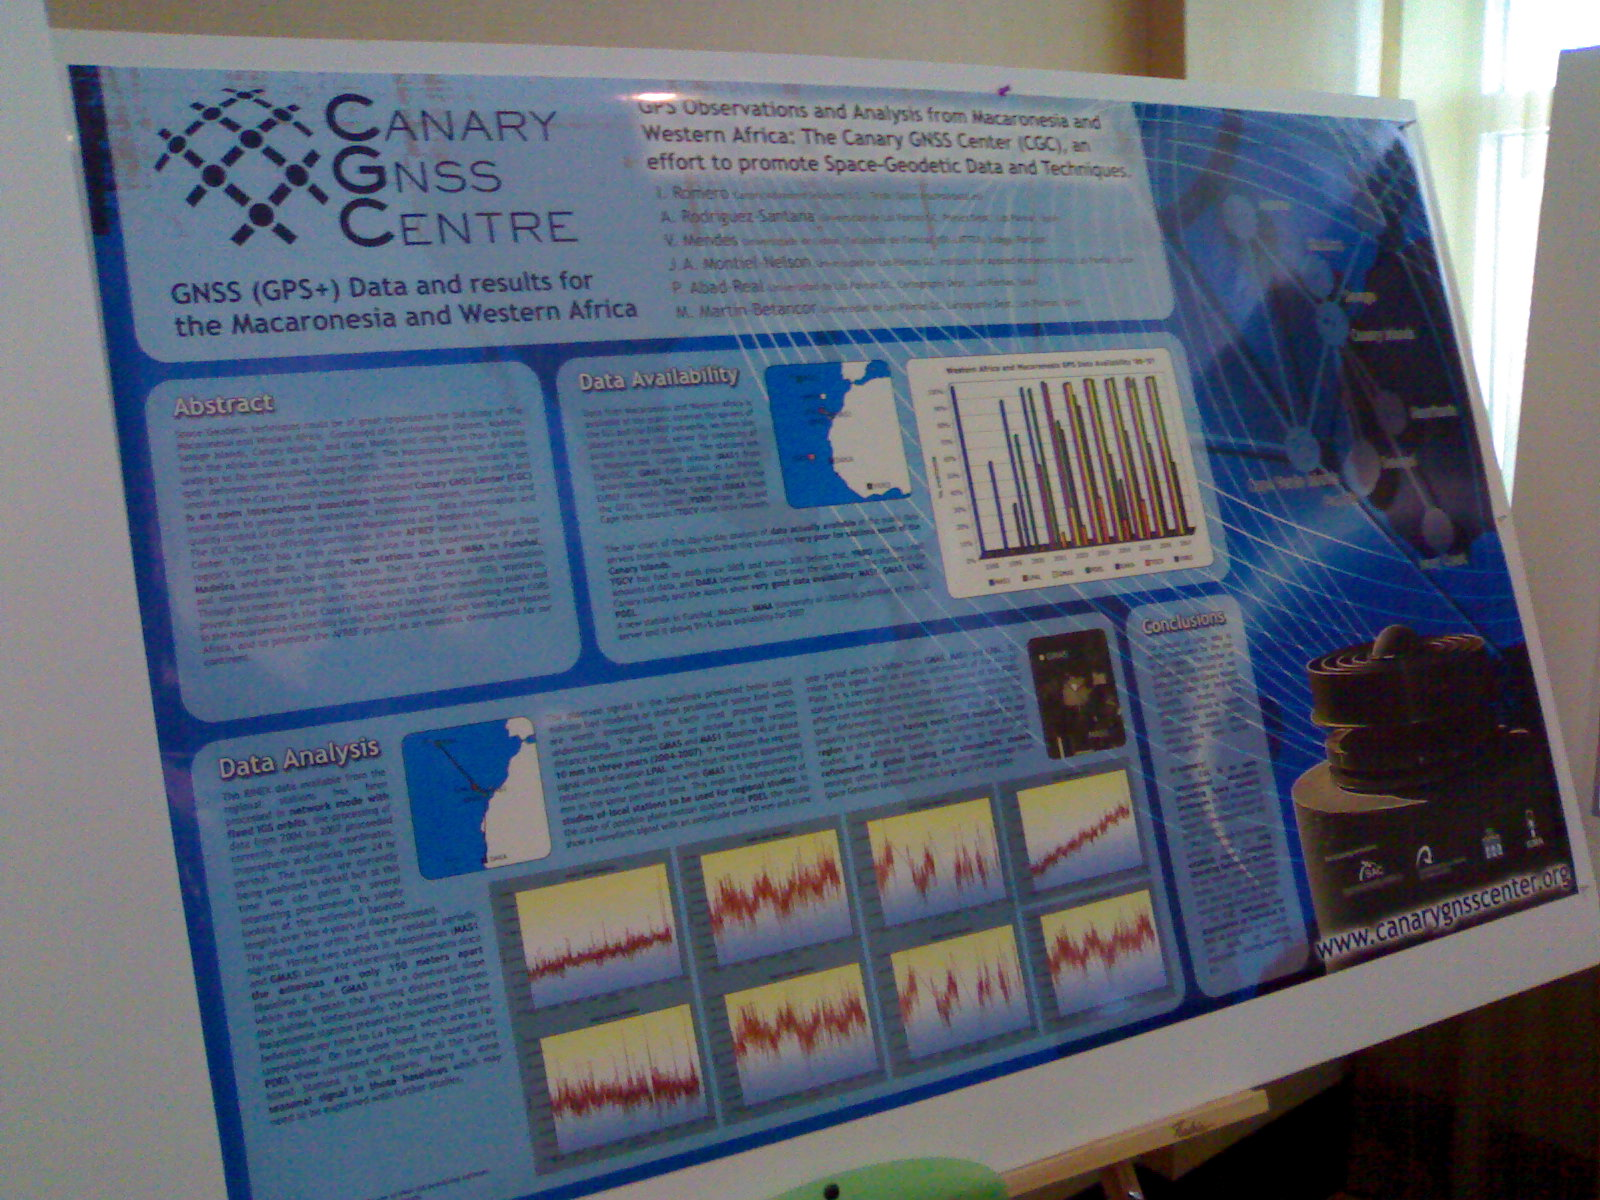 CGC poster at the 2008 IGS WS